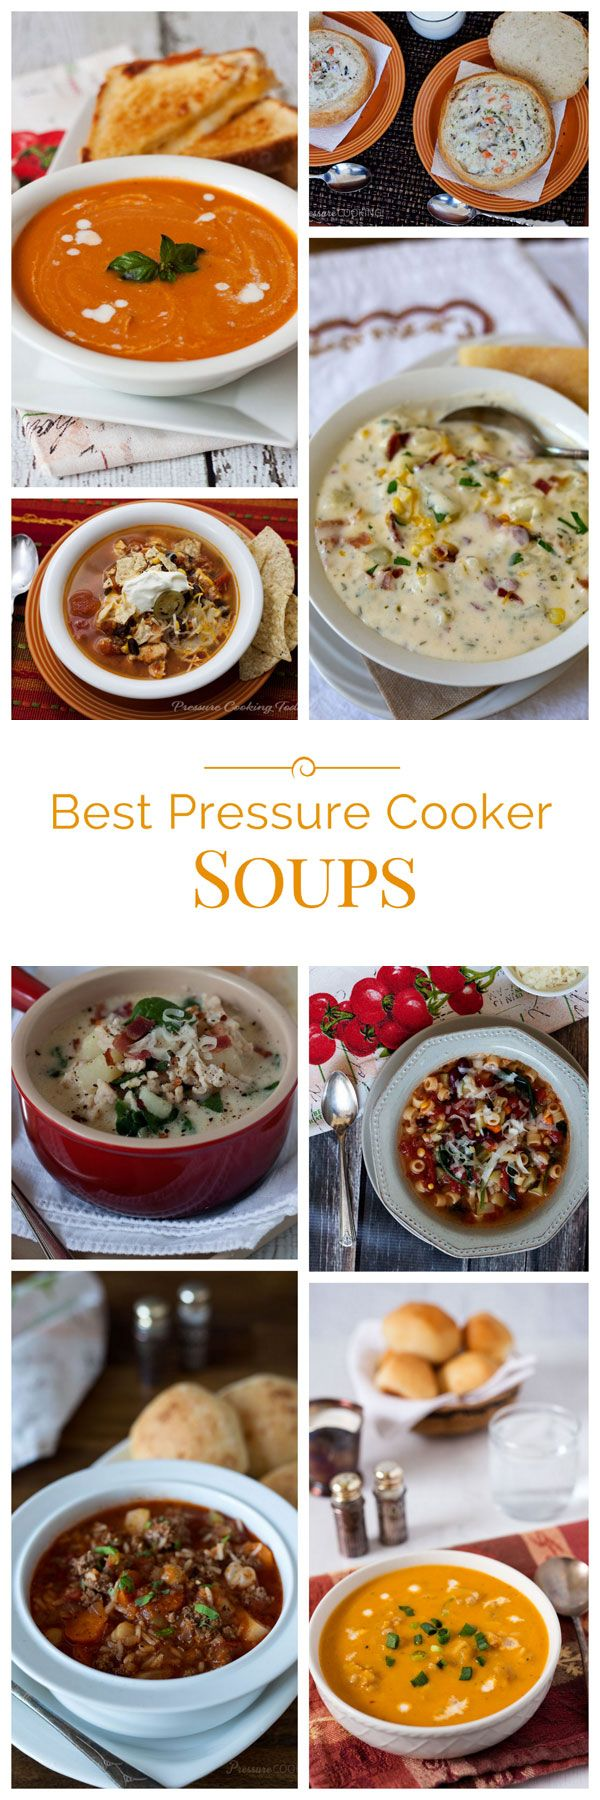 It's soup weather! I love homemade soups in the pressure cooker. So today, I'm sharing the best pressure cooker soup recipes on Pressure Cooking Today.